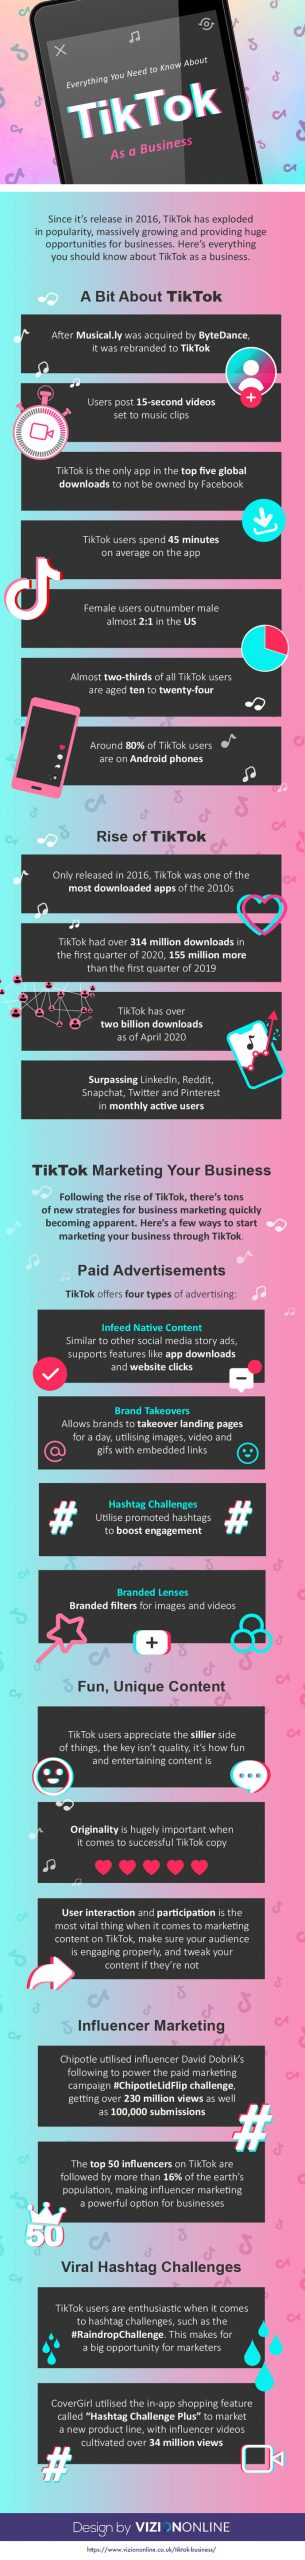 information about Tiktok as a business